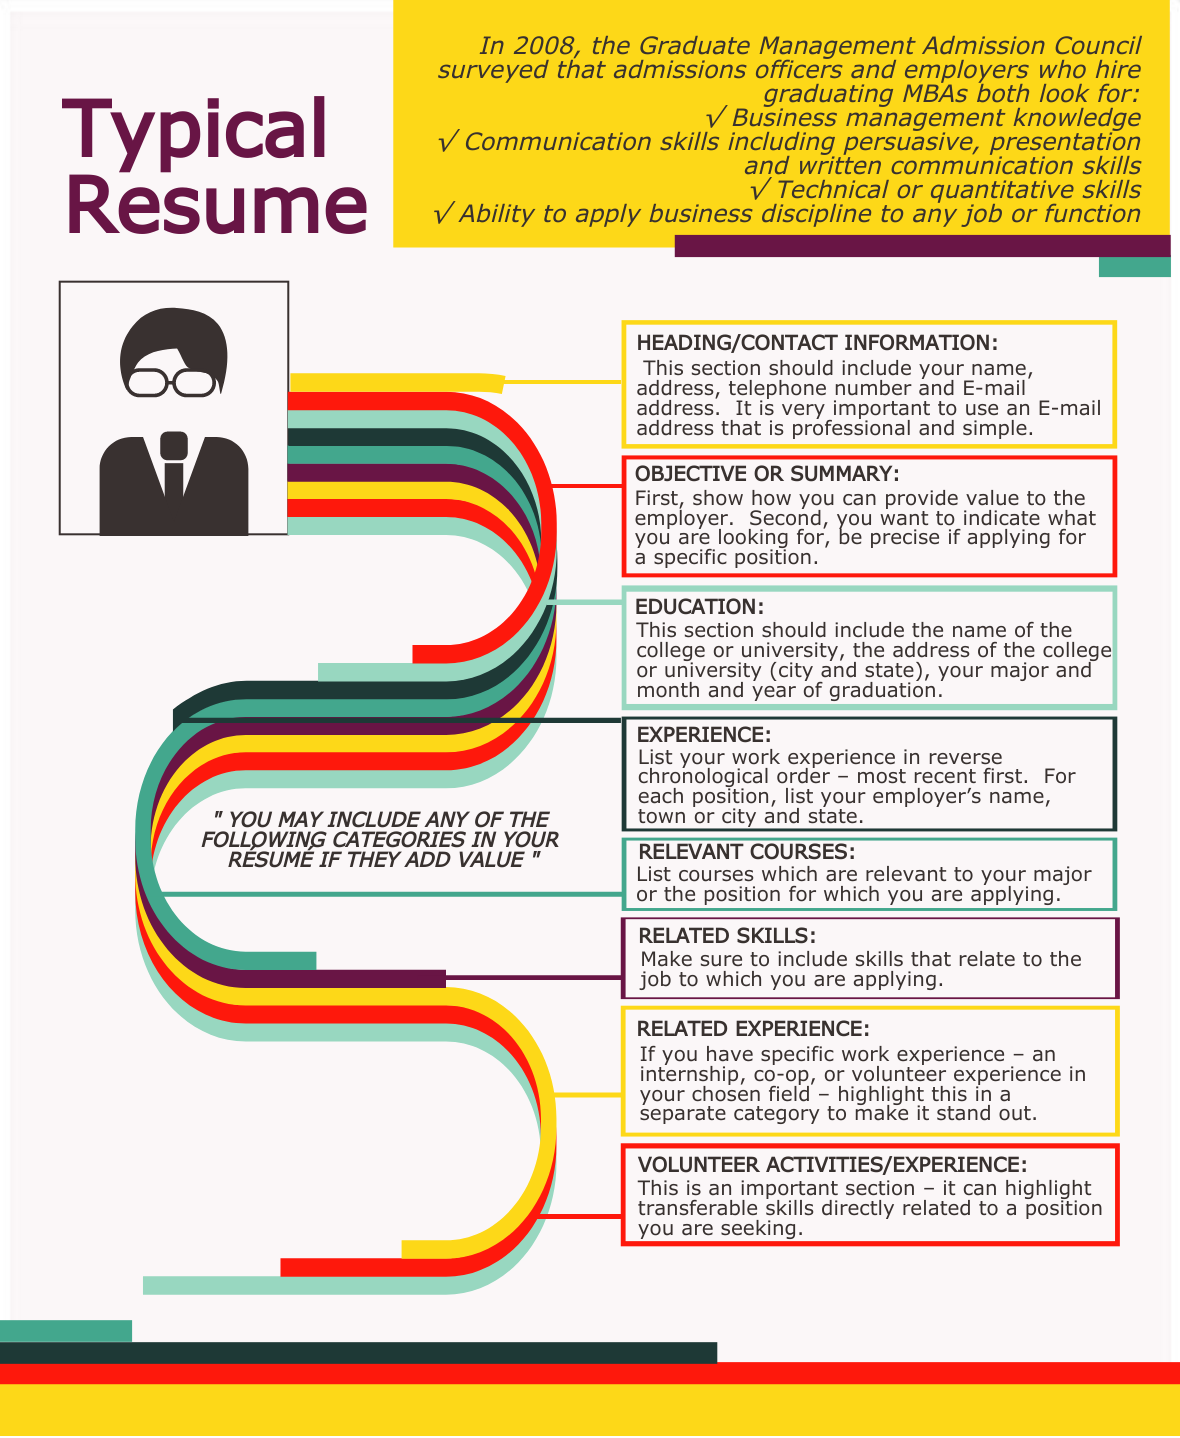 How An Mba Applicant S Resume Looks Like Difference Between